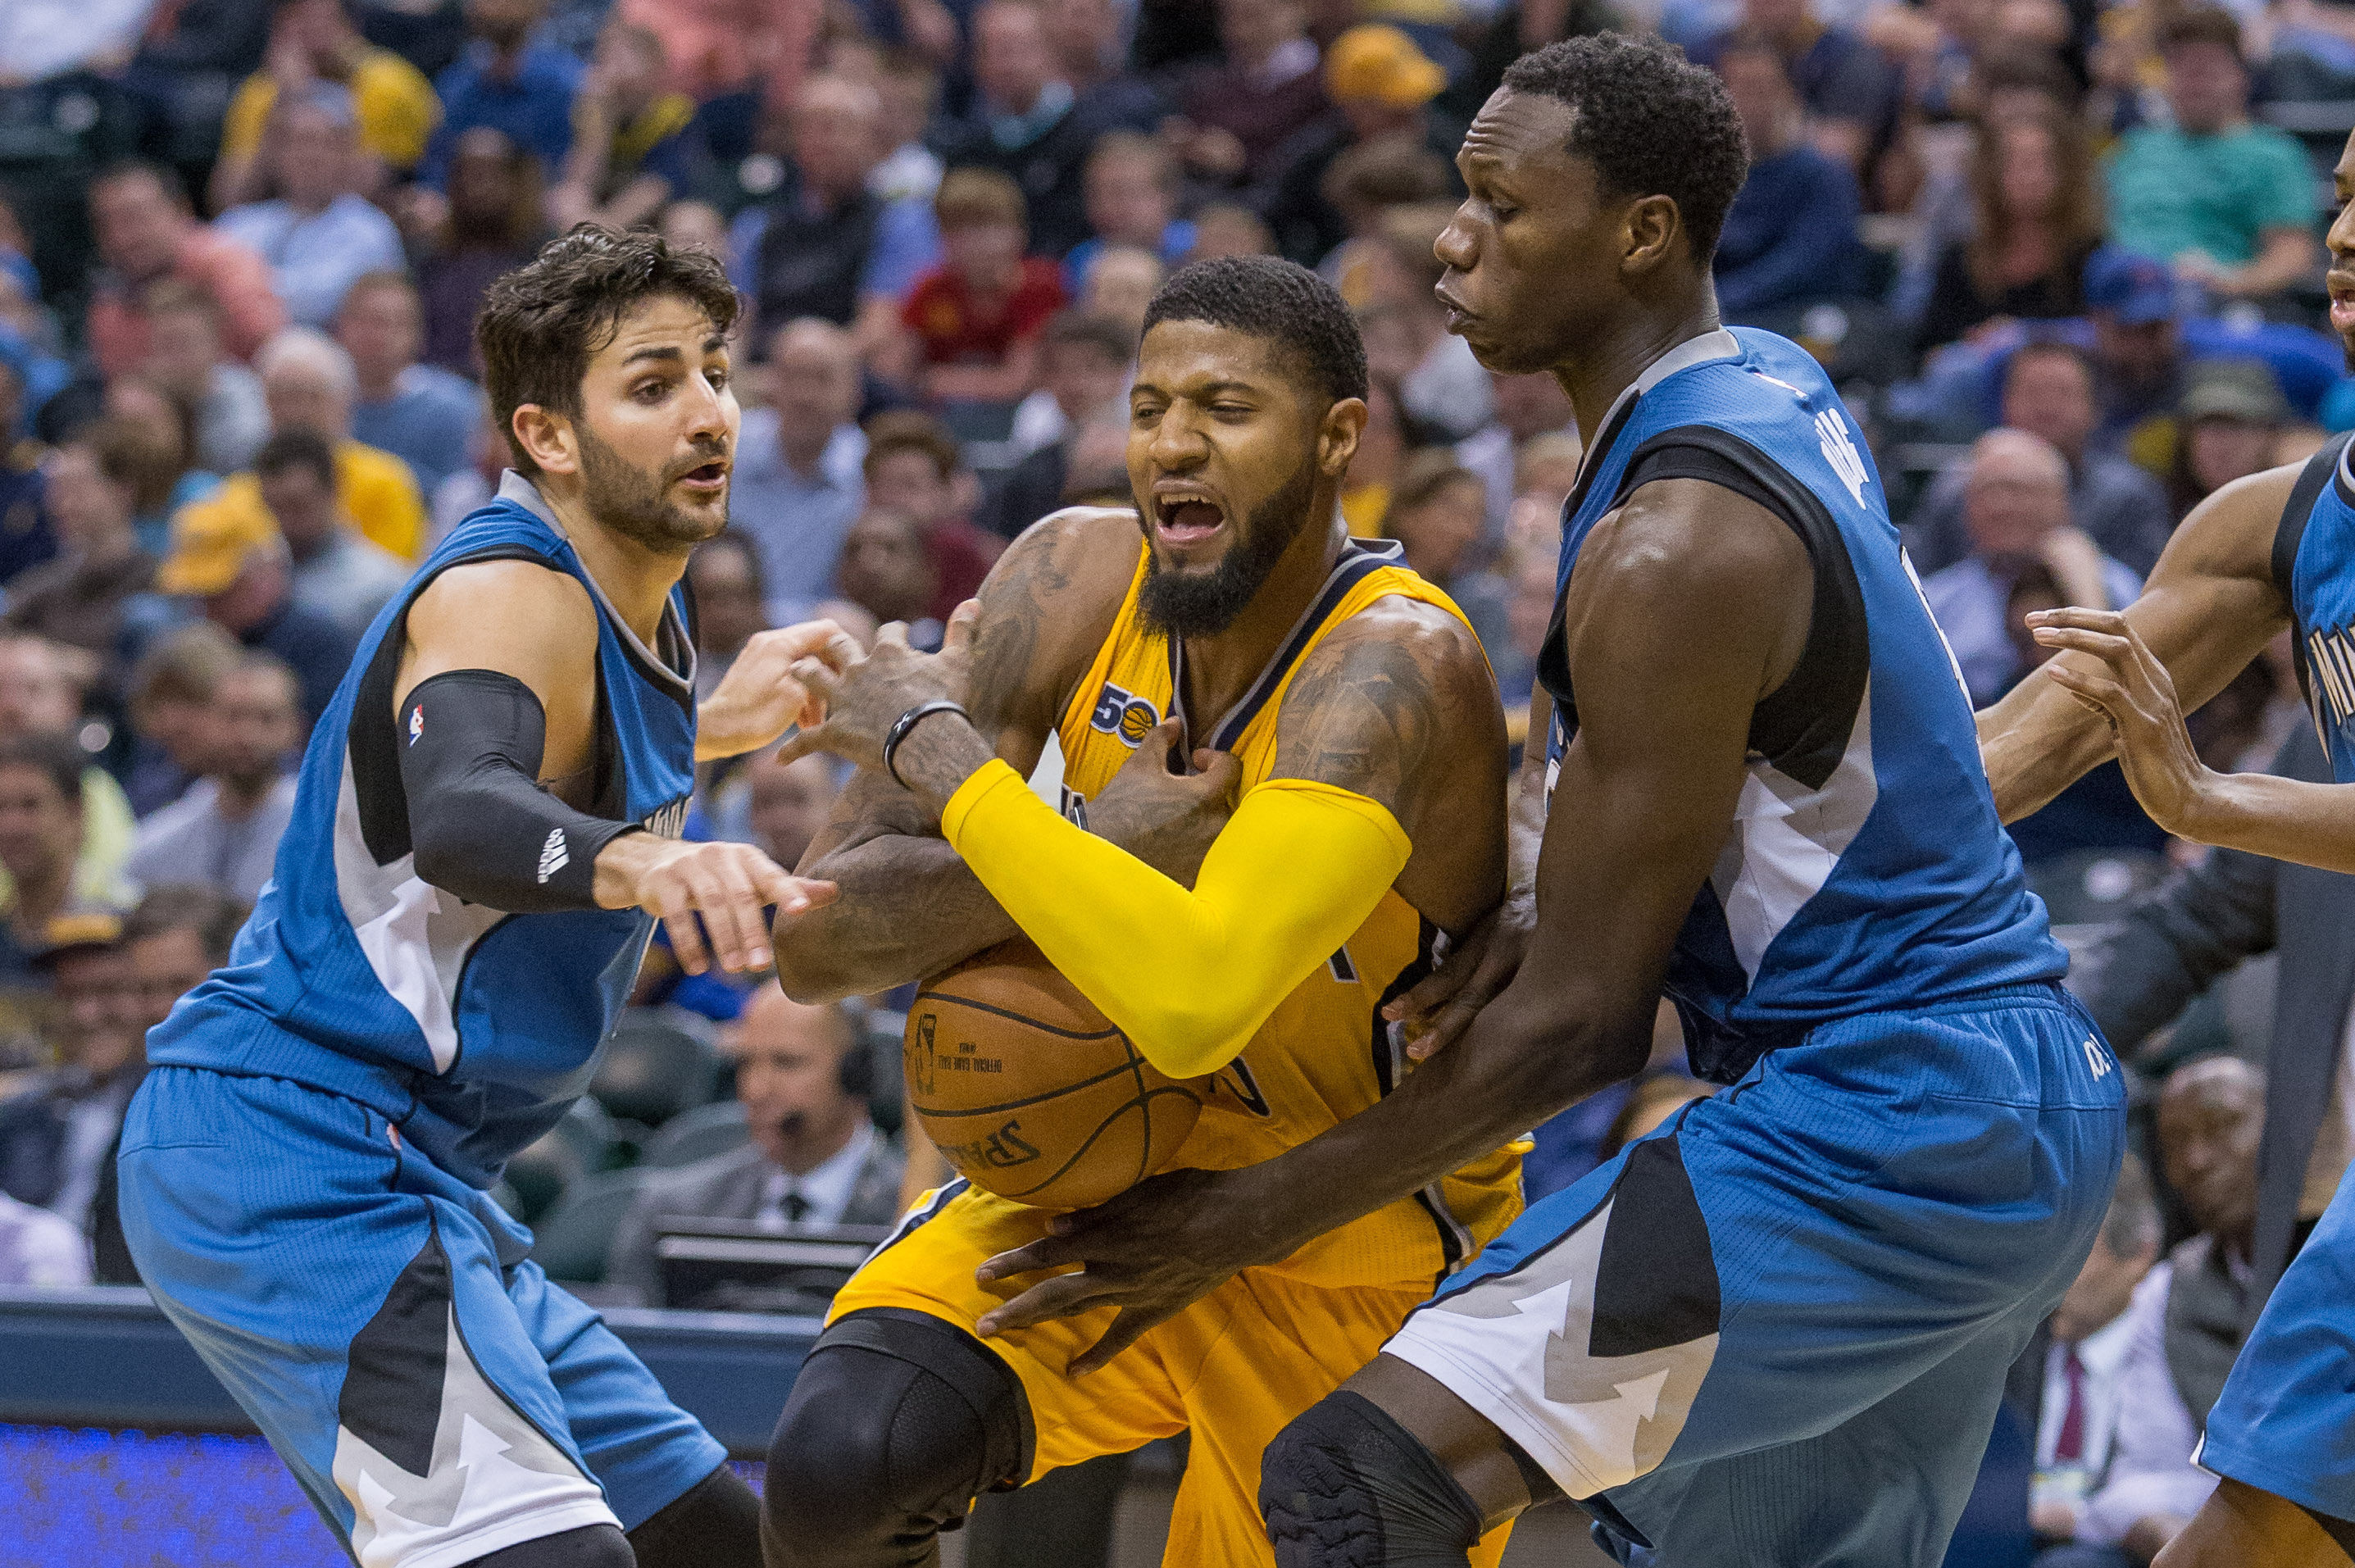 Philadelphia 76ers fans should root against indiana pacers mar 28 2017 indianapolis in usa indiana pacers forward paul george 13 is fouled by minnesota timberwolves forward gorgui dieng 5 in the second half voltagebd Choice Image